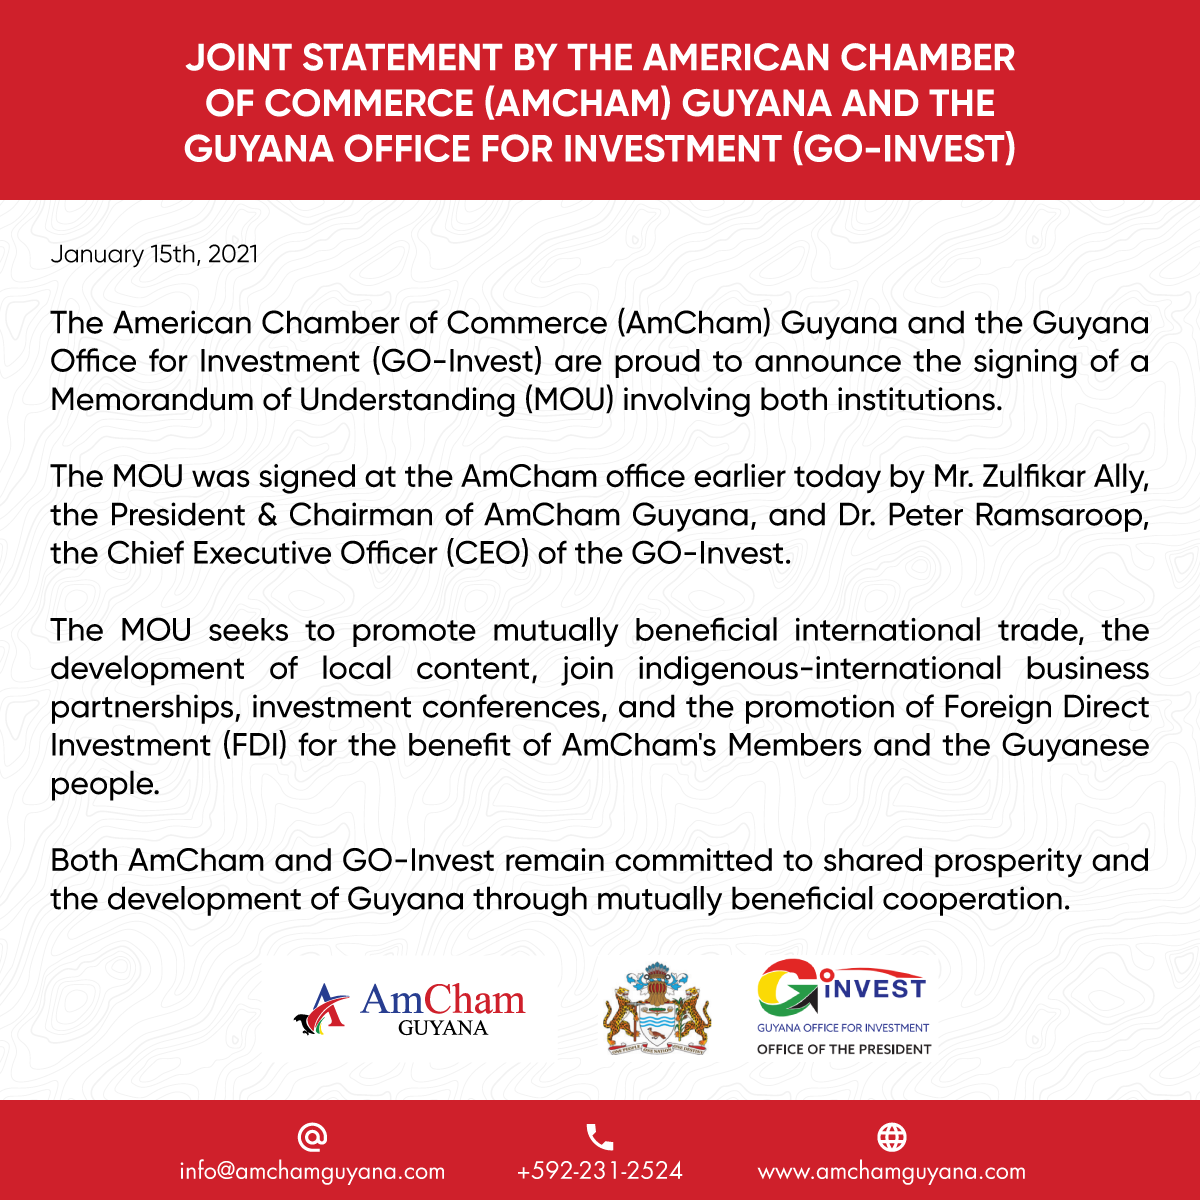 Joint Statement by AmCham Guyana and GO-INVEST